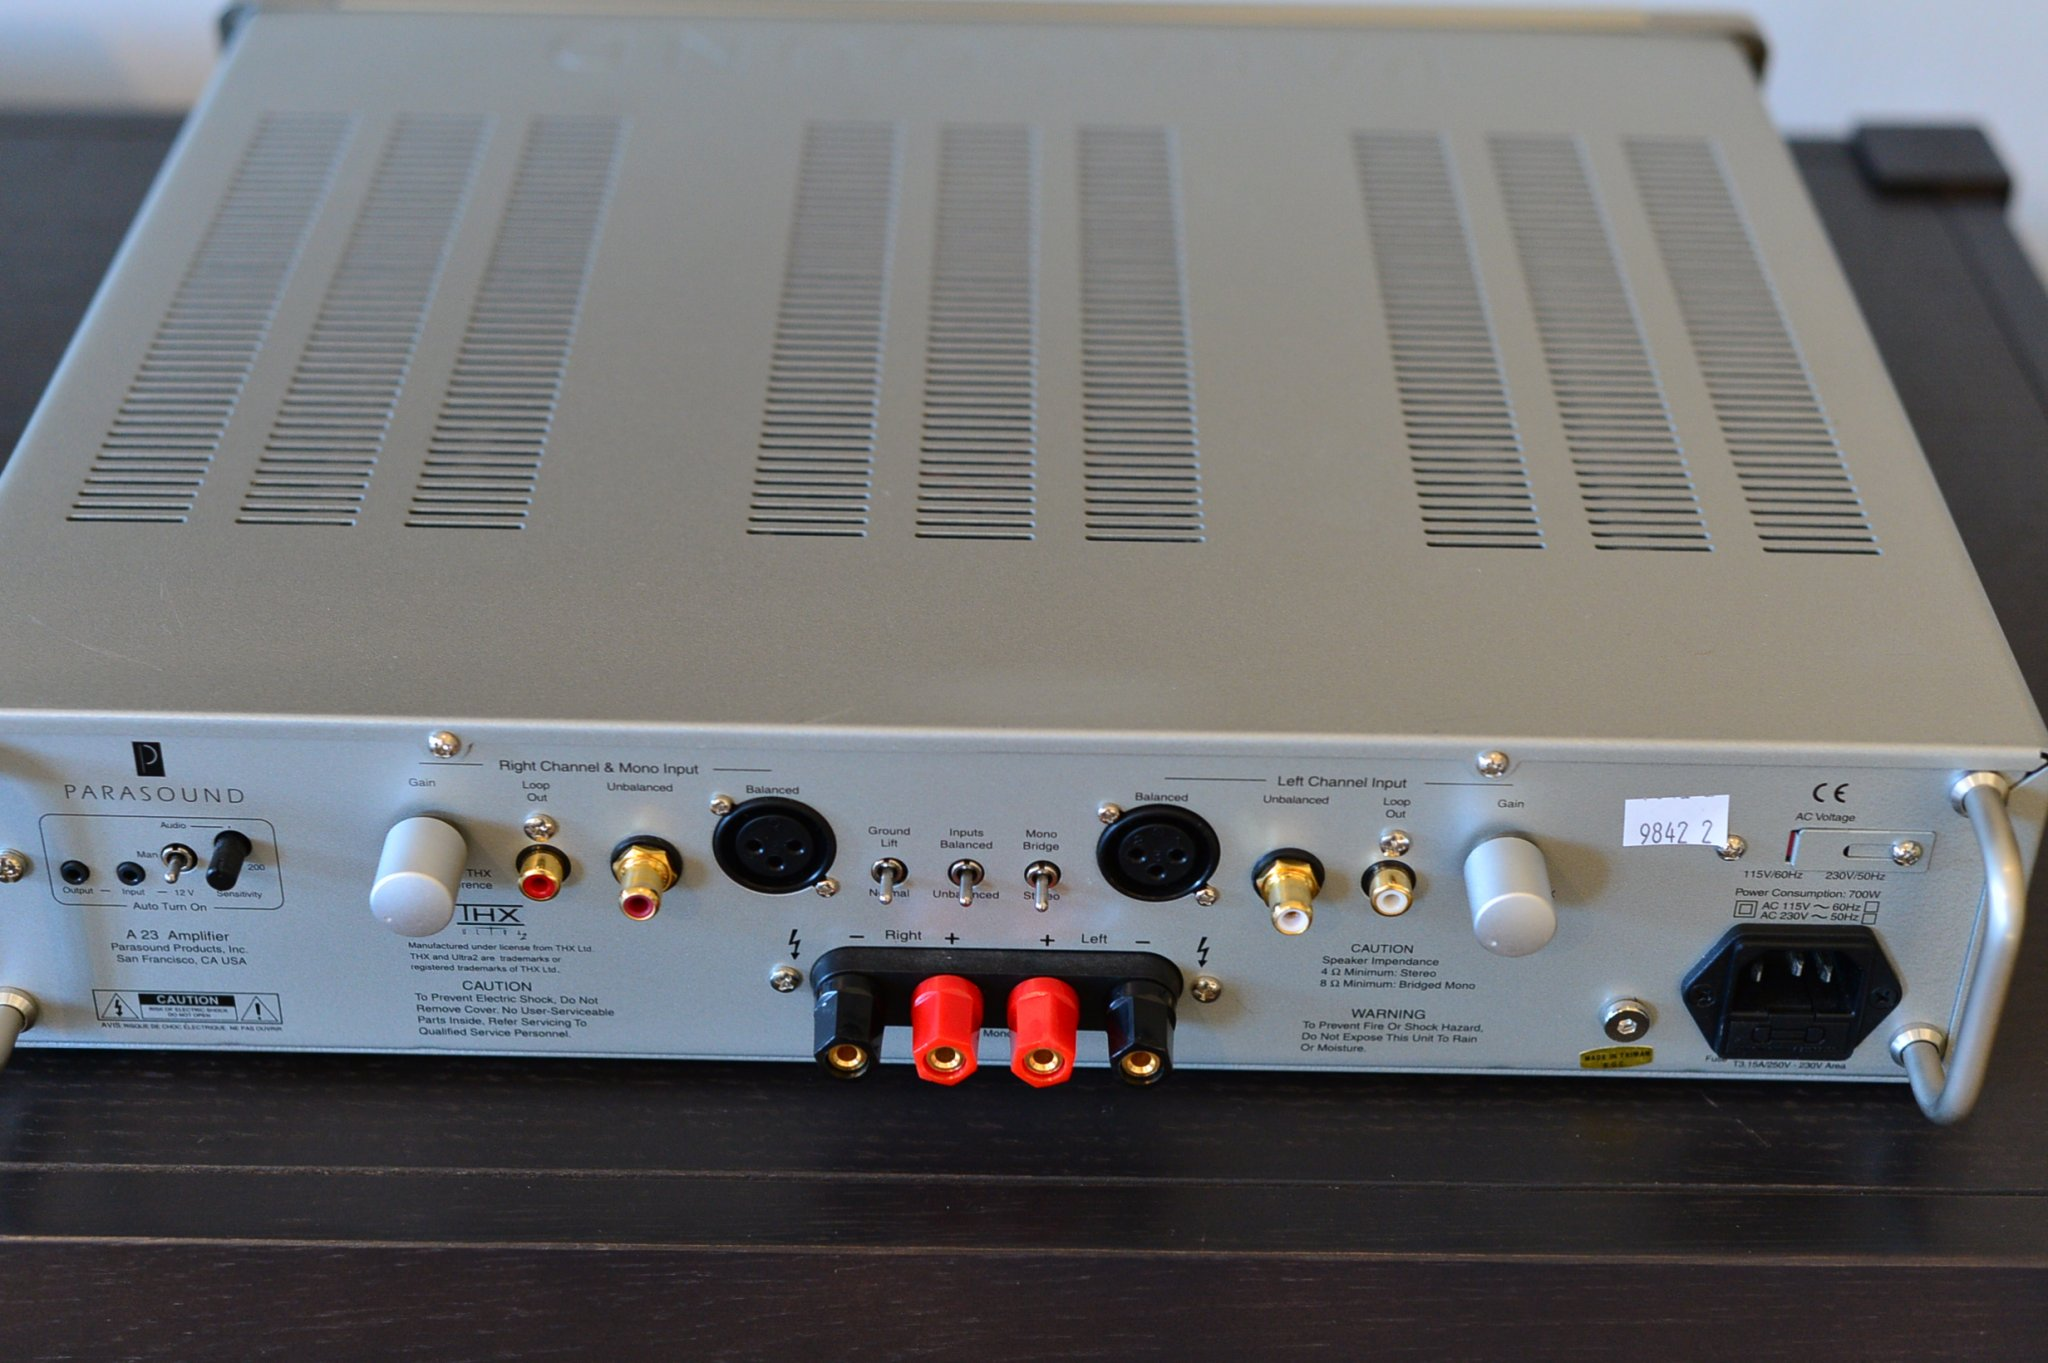 Parasound Halo A23 Stereo Amplifier Review Super Best Audio Friends Basics A Modern System Has Two Dsc 1724